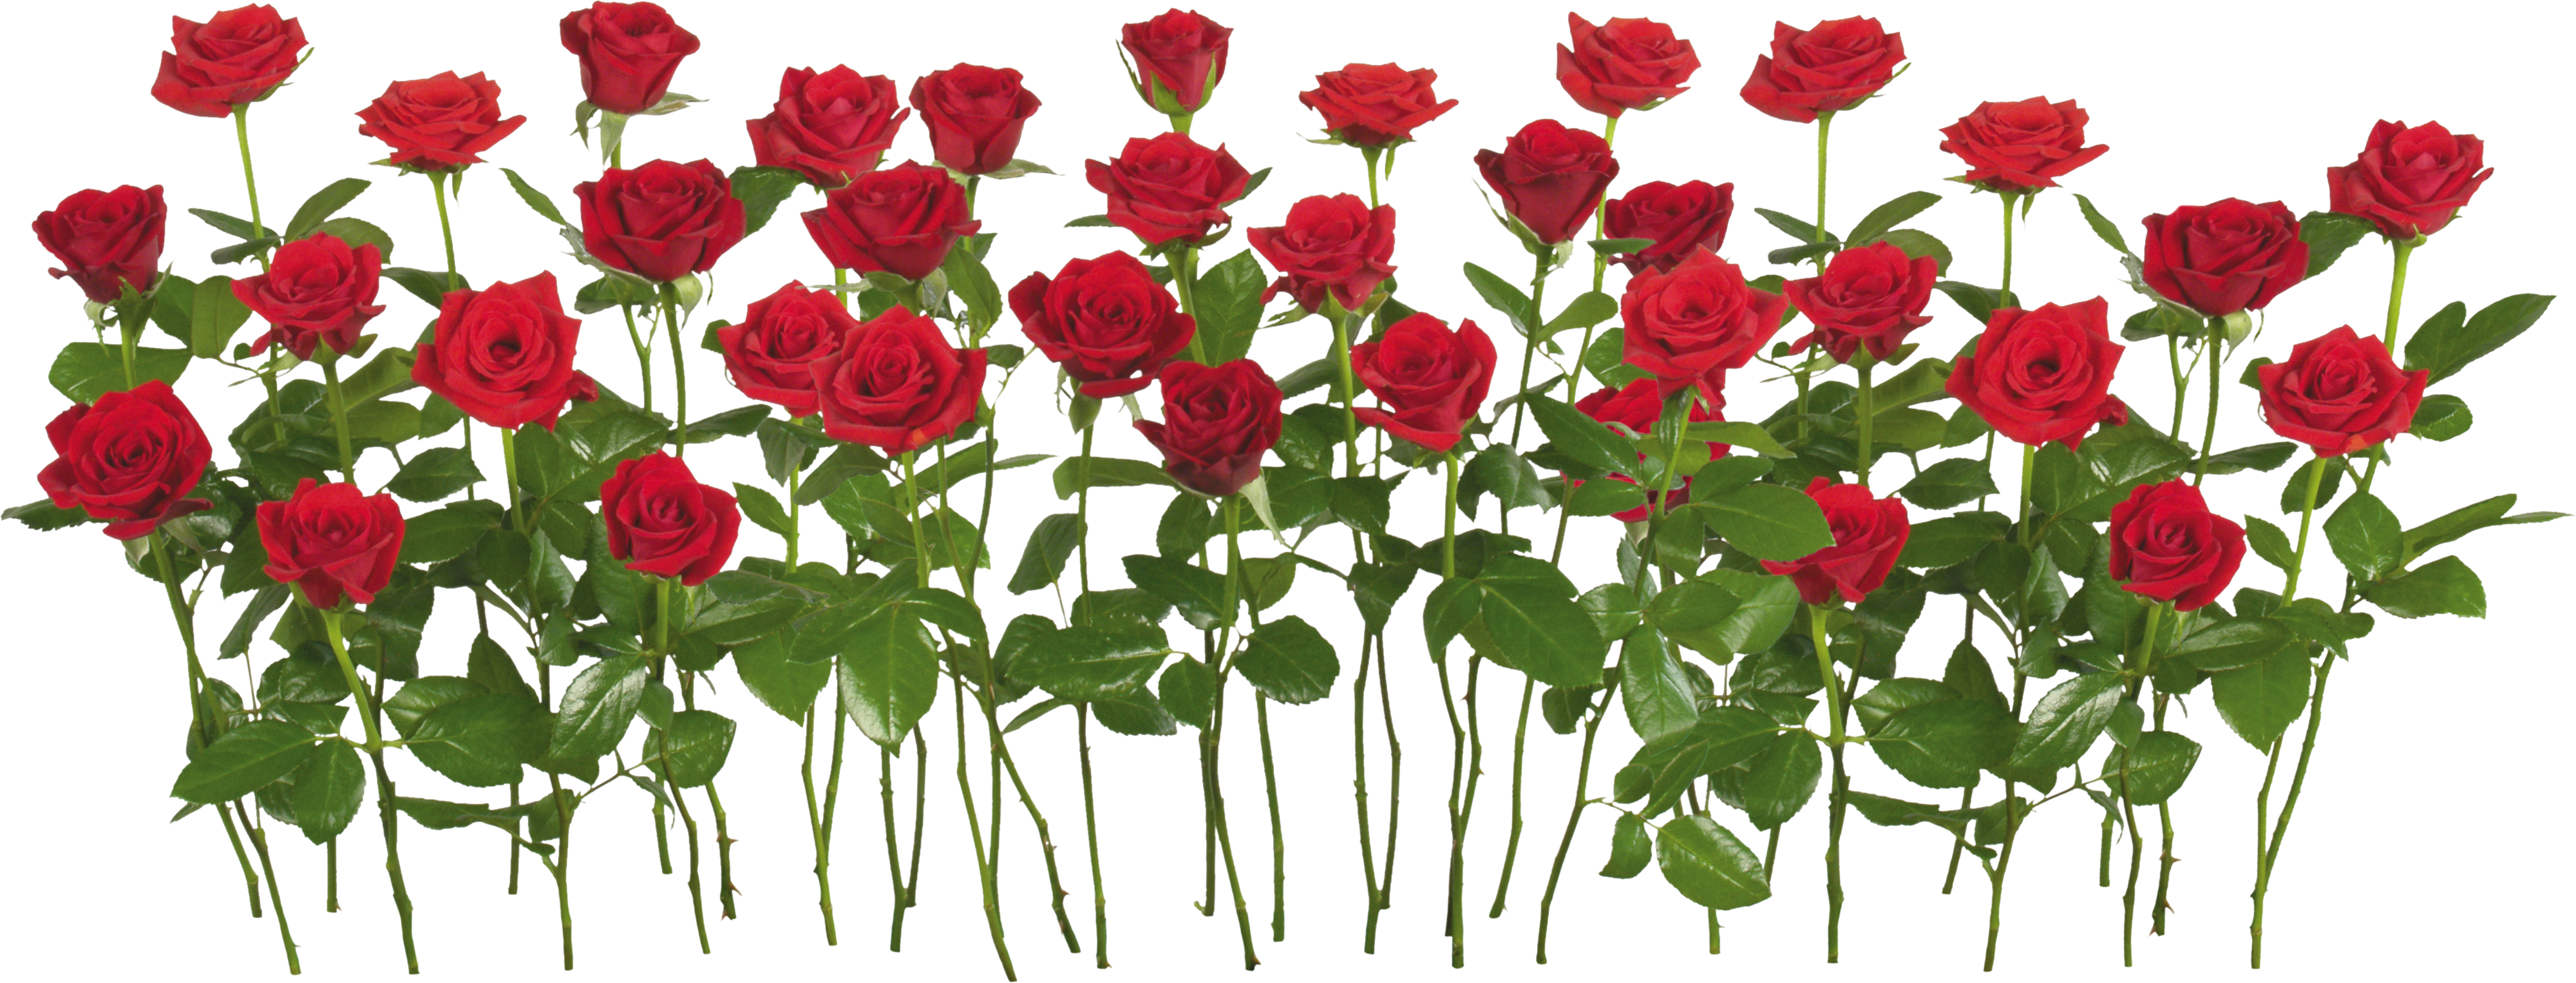 Flower plant png. Rose images free download